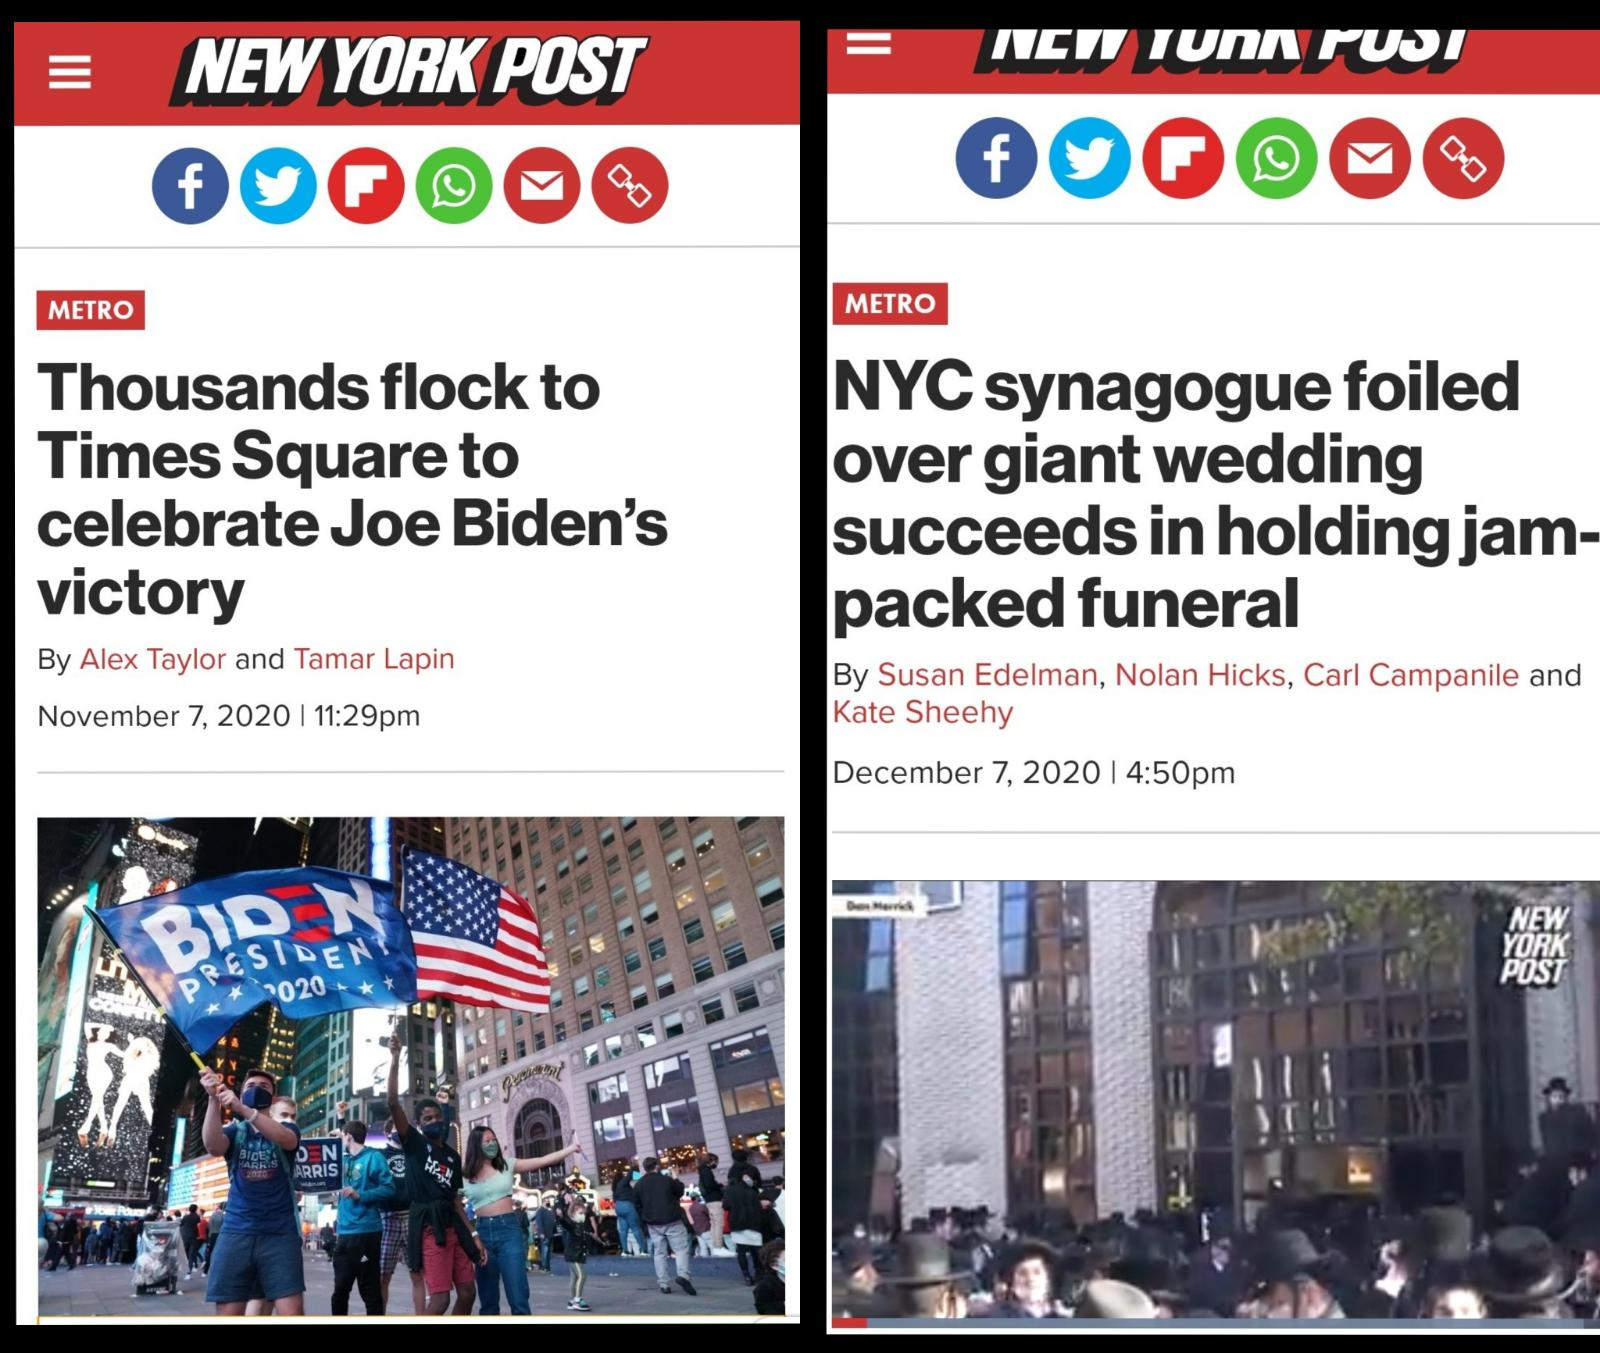 NY Post Continues Publishing Hateful Articles Towards Orthodox Jews In Dazzling Double-Standard.